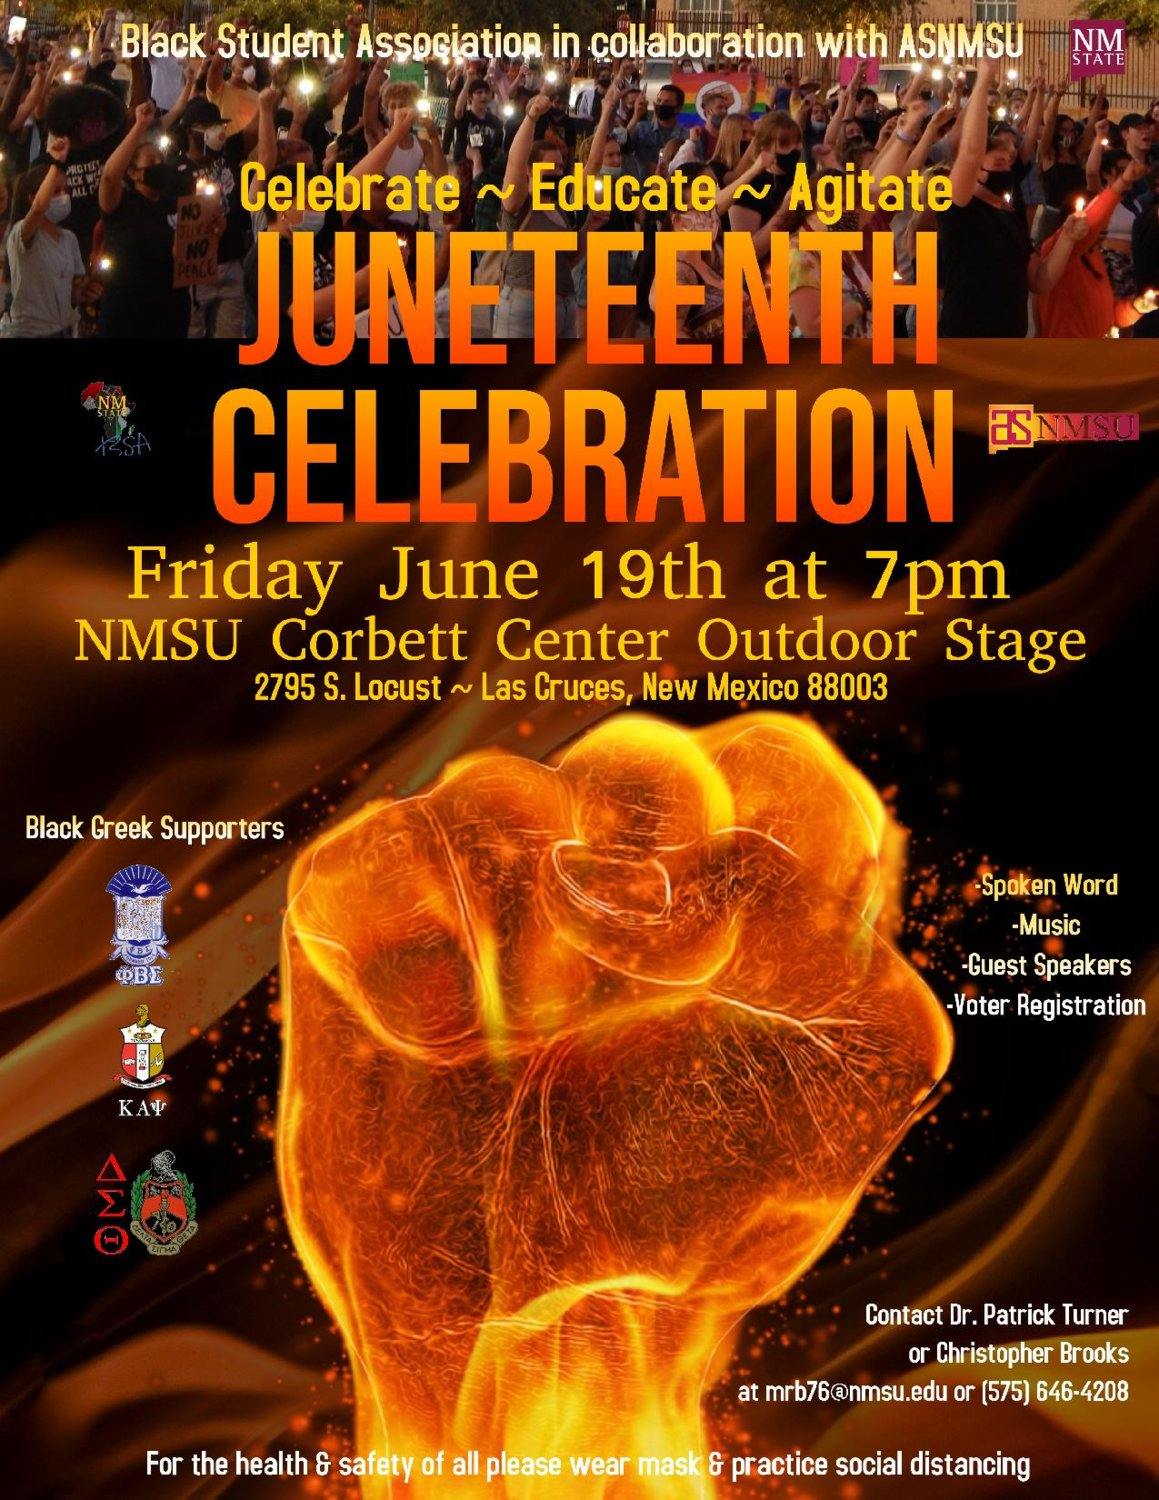 NMSU's Juneteenth celebration will focus on three things: celebrating, educating and agitating. The event will also have a call to action, telling people to vote and helping to register those who are not registered. The celebration will take place from 7 to 8:30 p.m. June 19 at the outdoor stage located at Corbett Center.